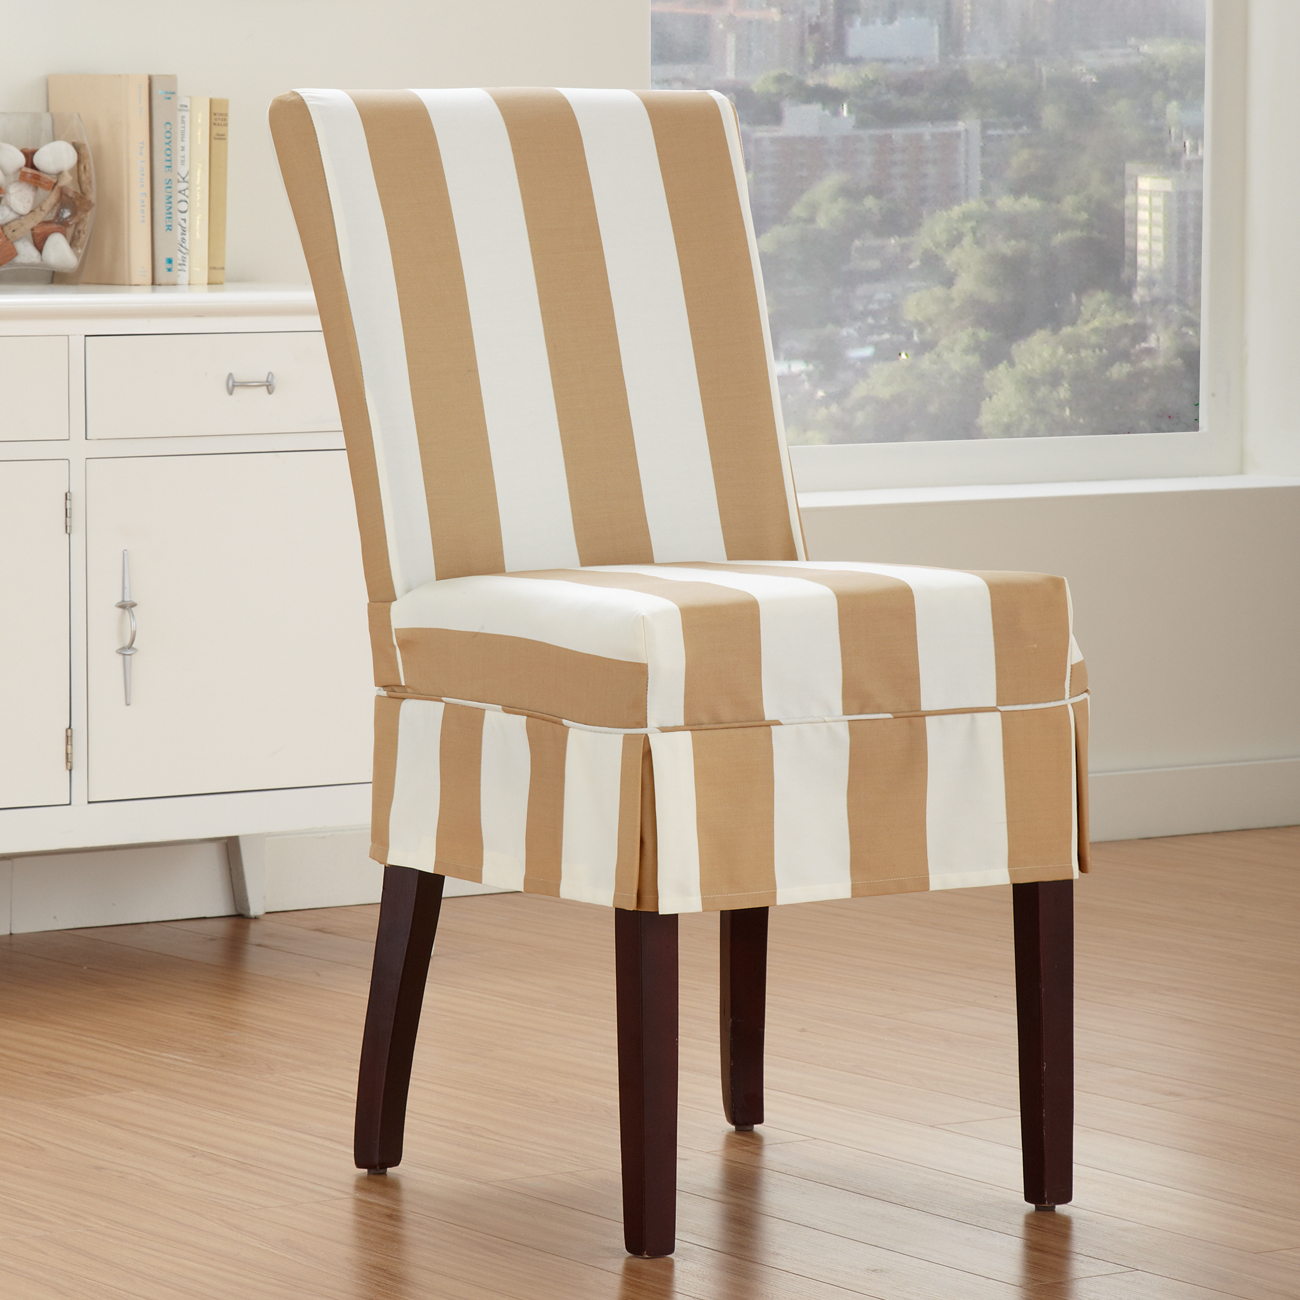 Slip Cover Dining Chair Room Covers